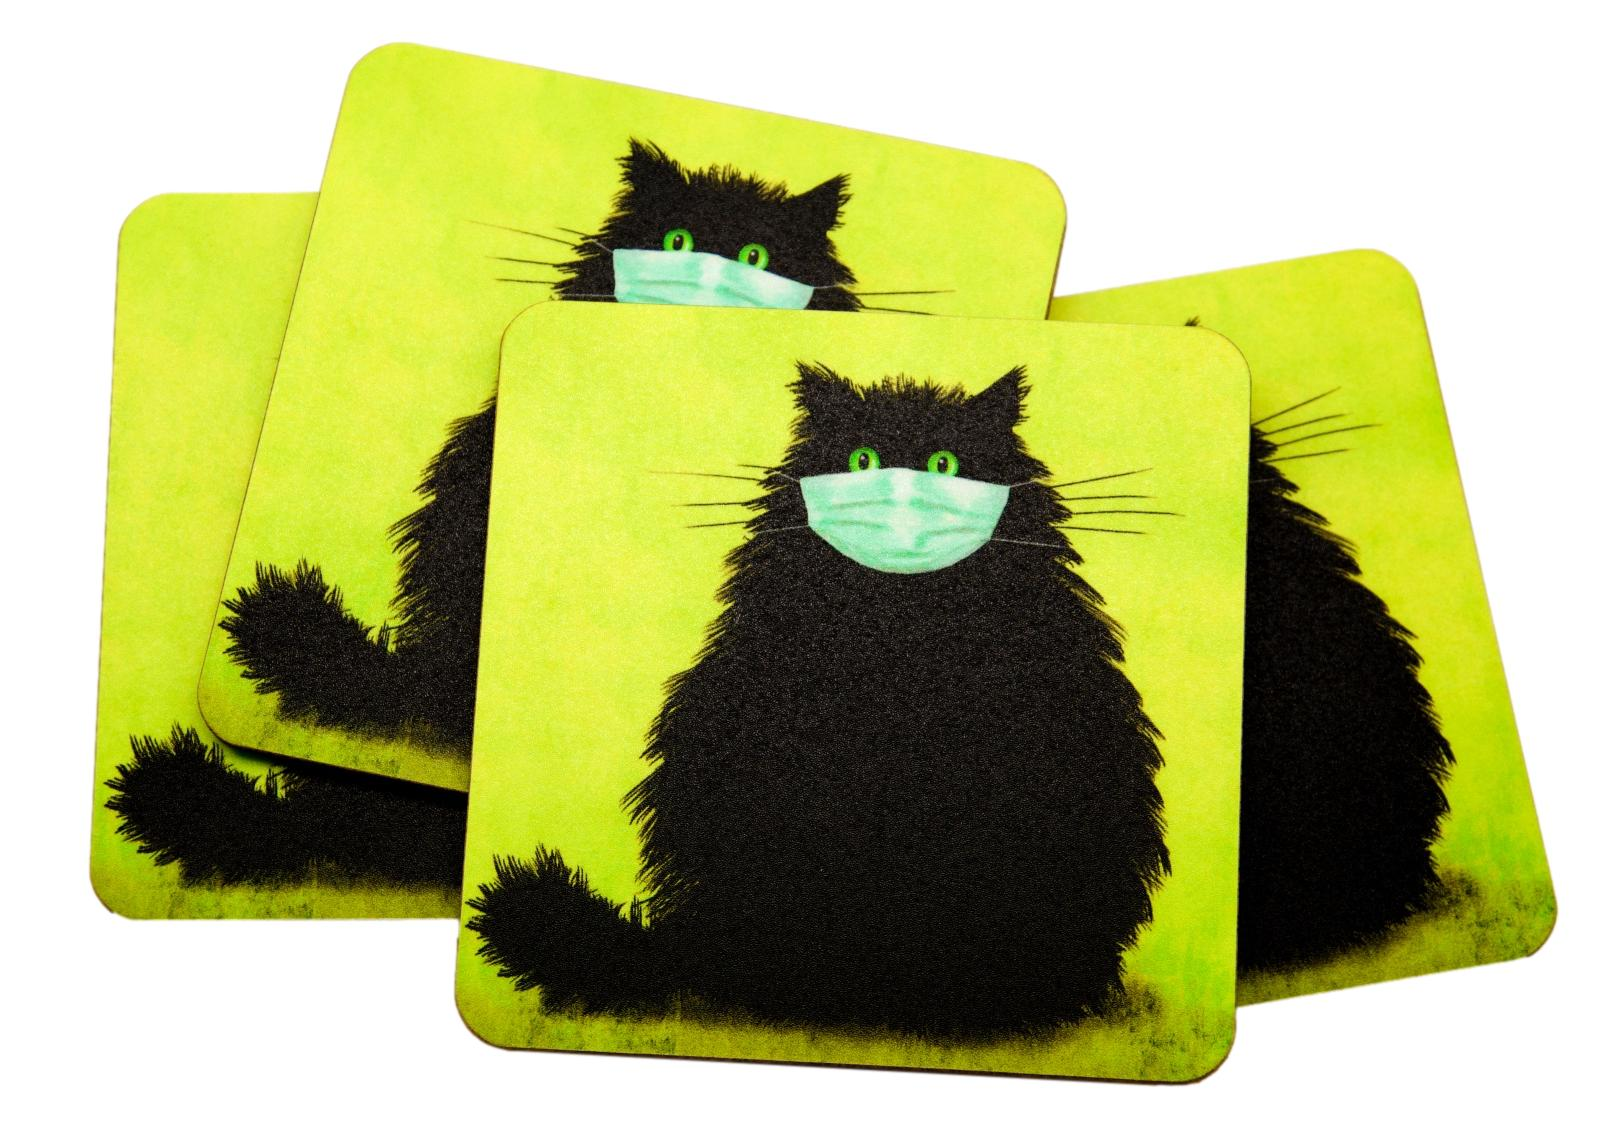 The Masketeer Black Cat Set of 4 Cat Coasters